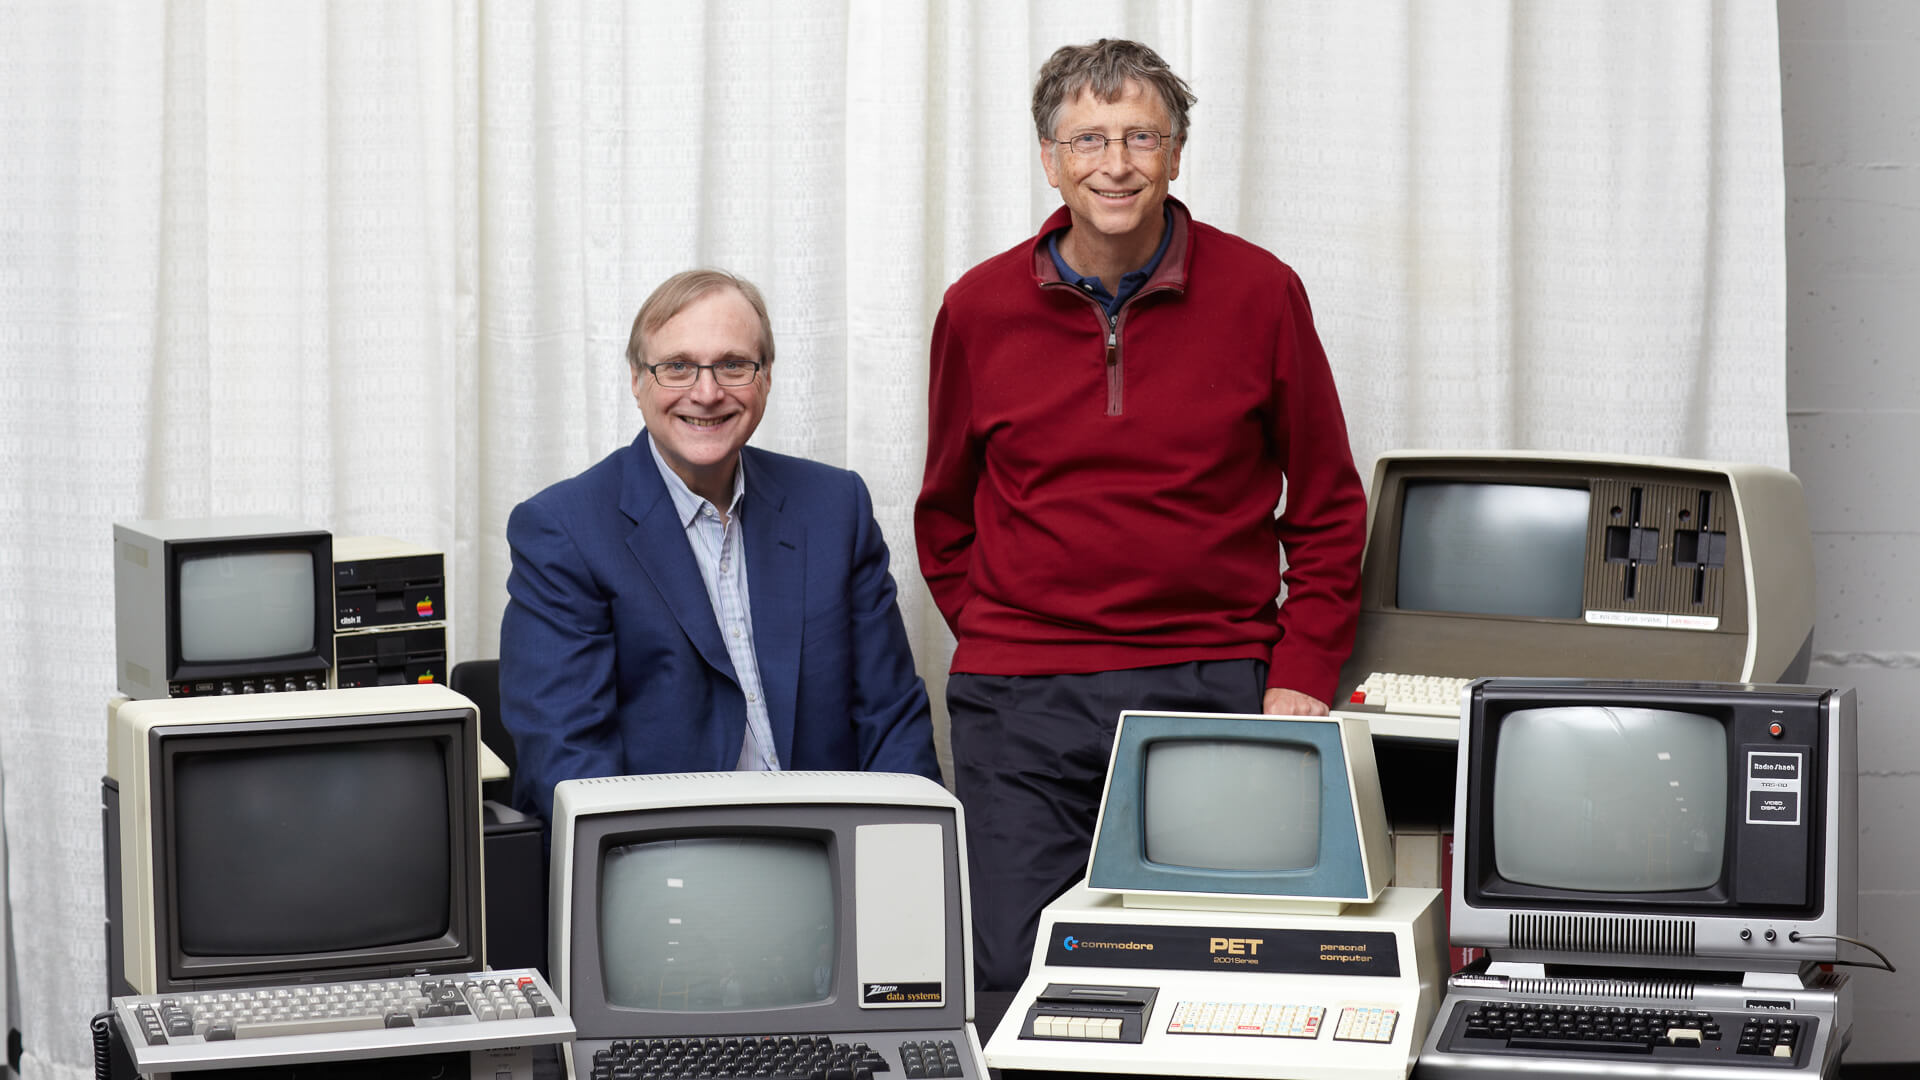 Bill Gates and Paul Allen